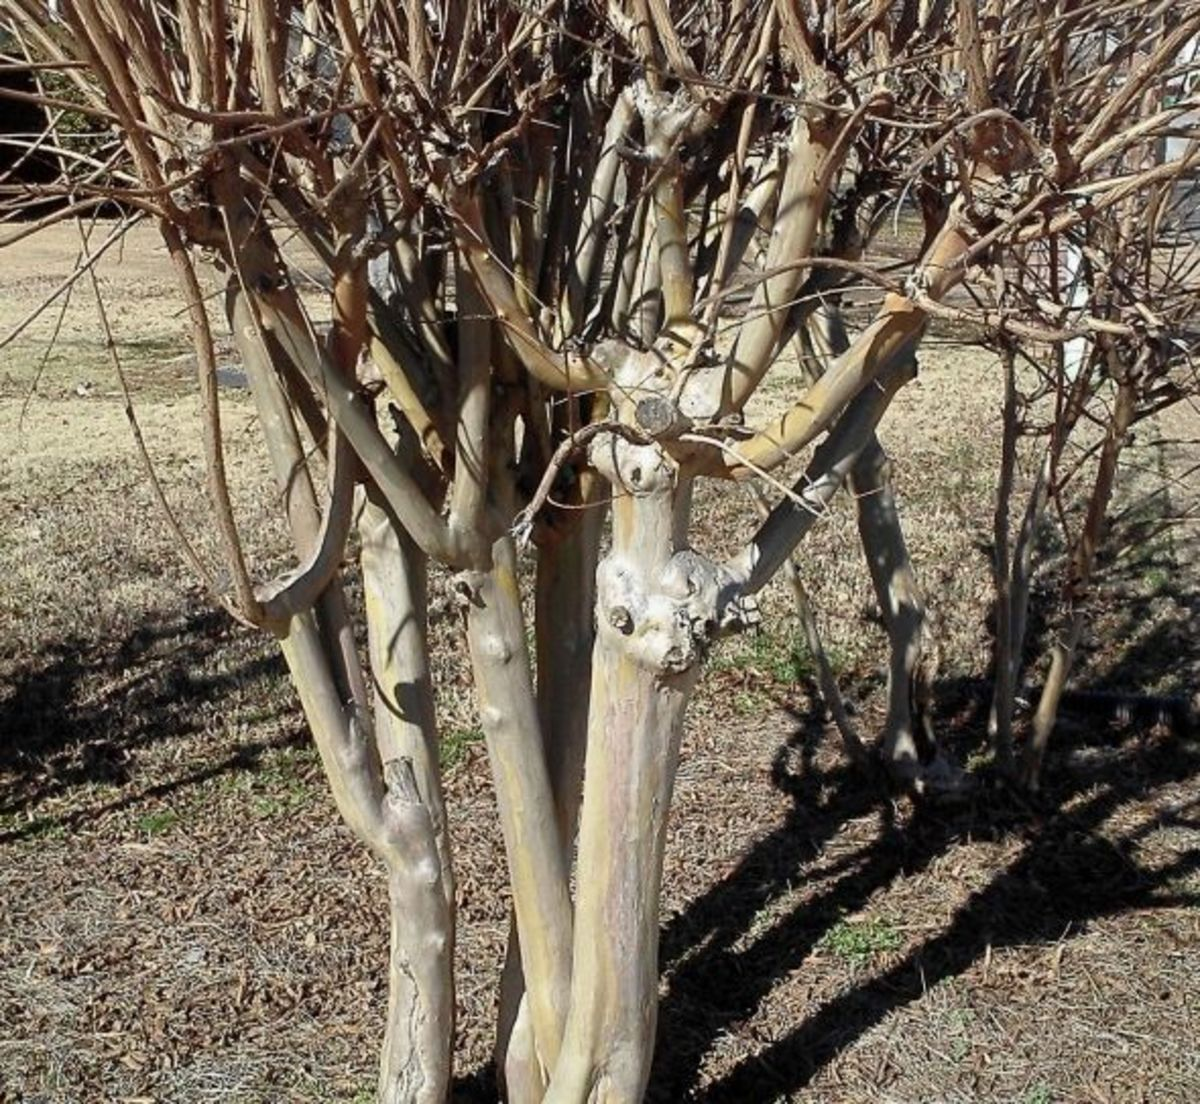 New growth on old stumps from improper pruning.